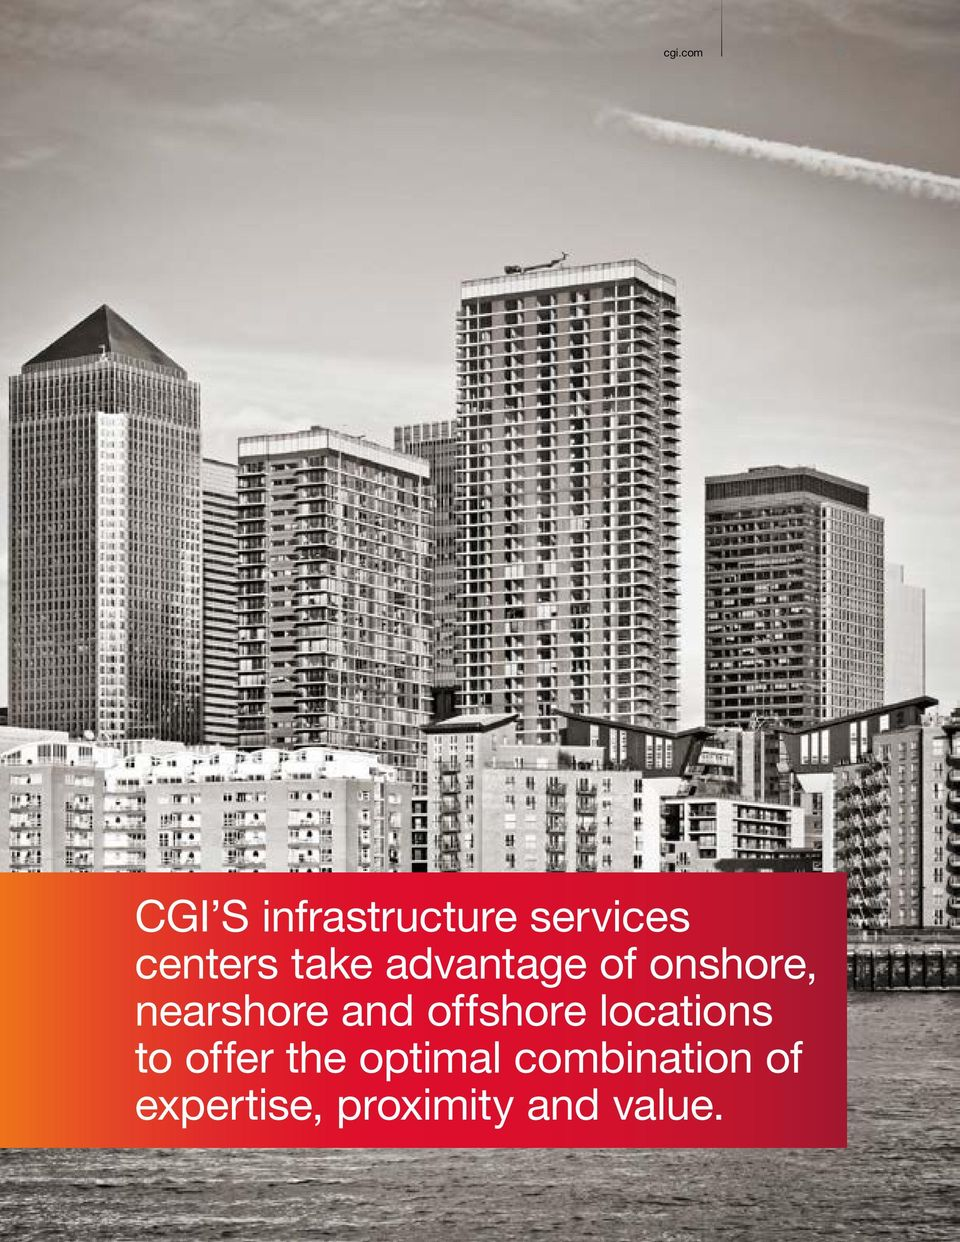 nearshore and offshore locations to offer